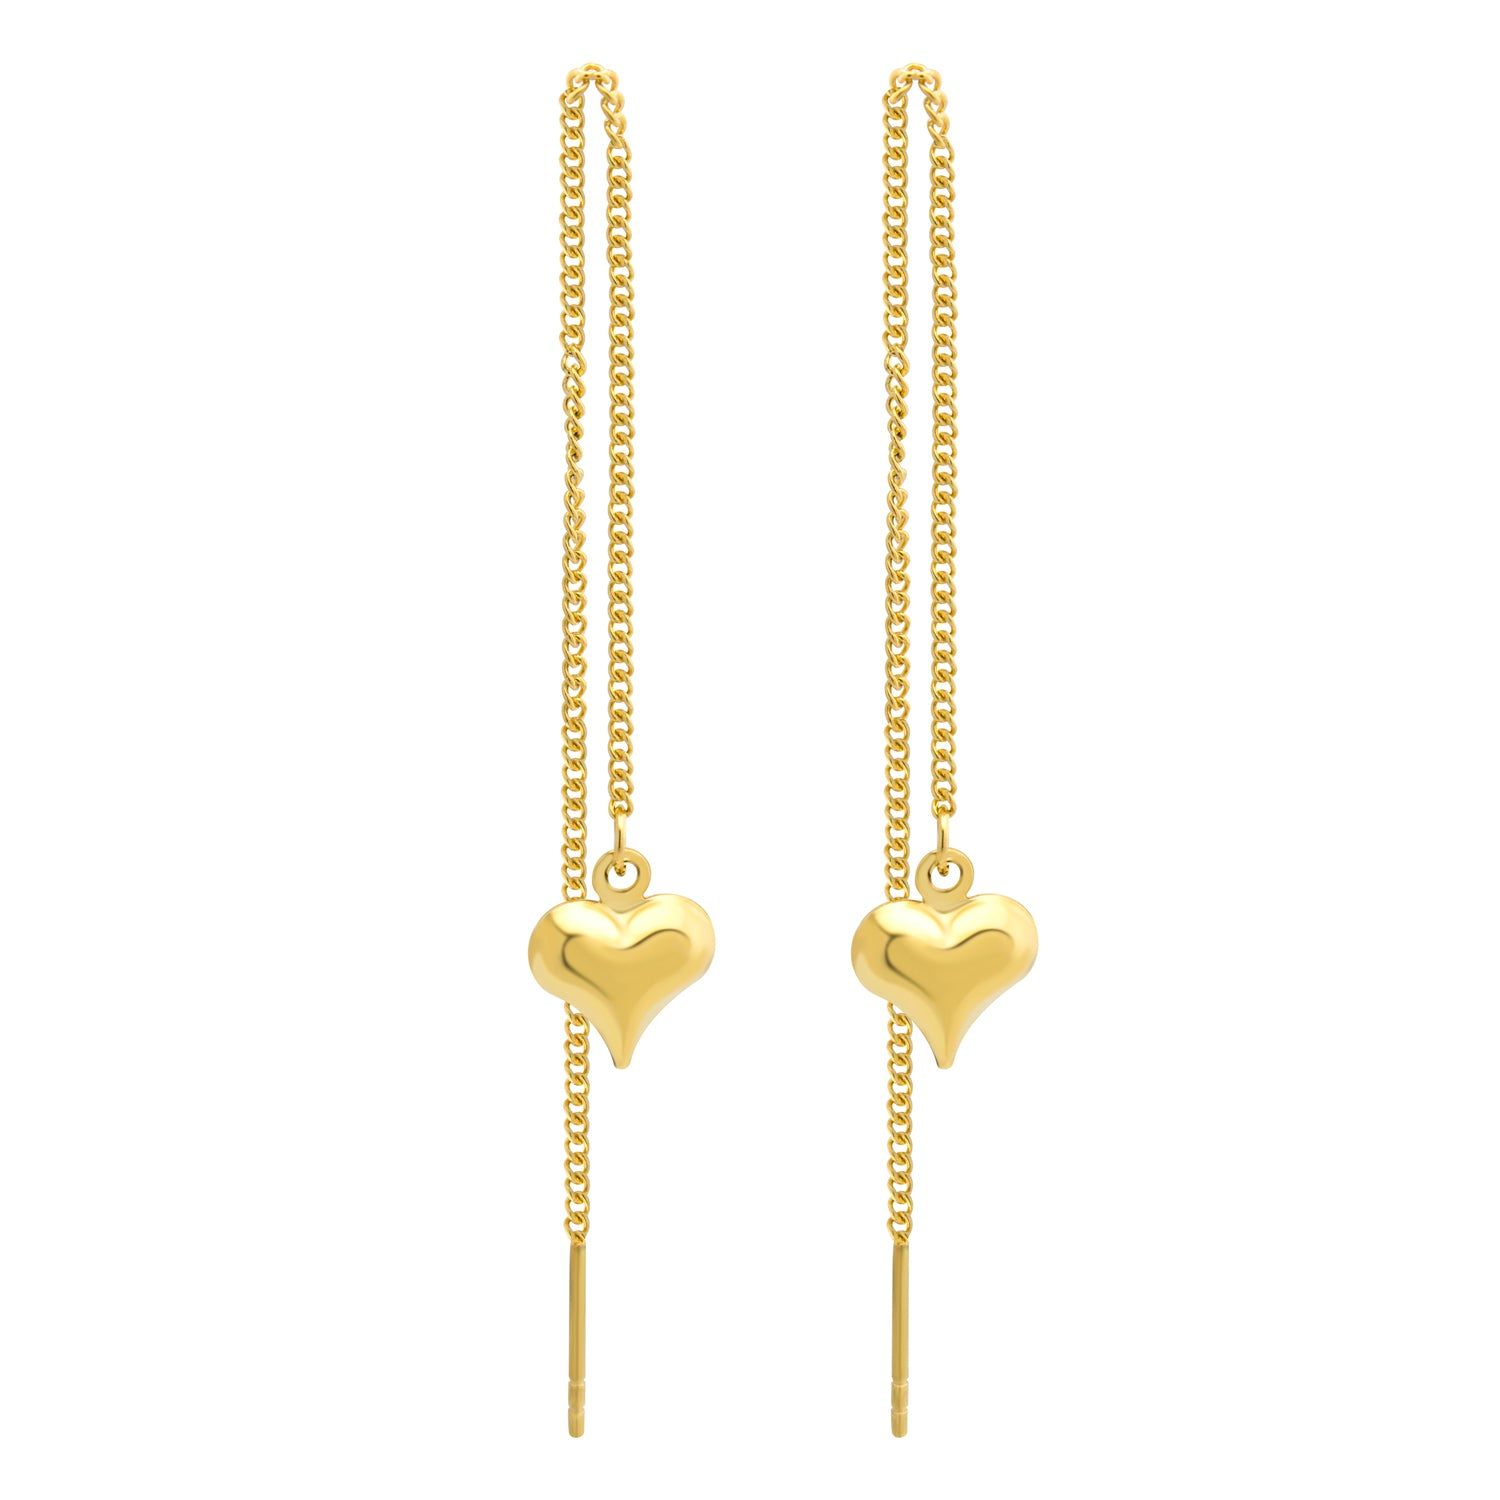 MNC-ER797-B Stainless Steel & Gold Threaded Heart Earrings